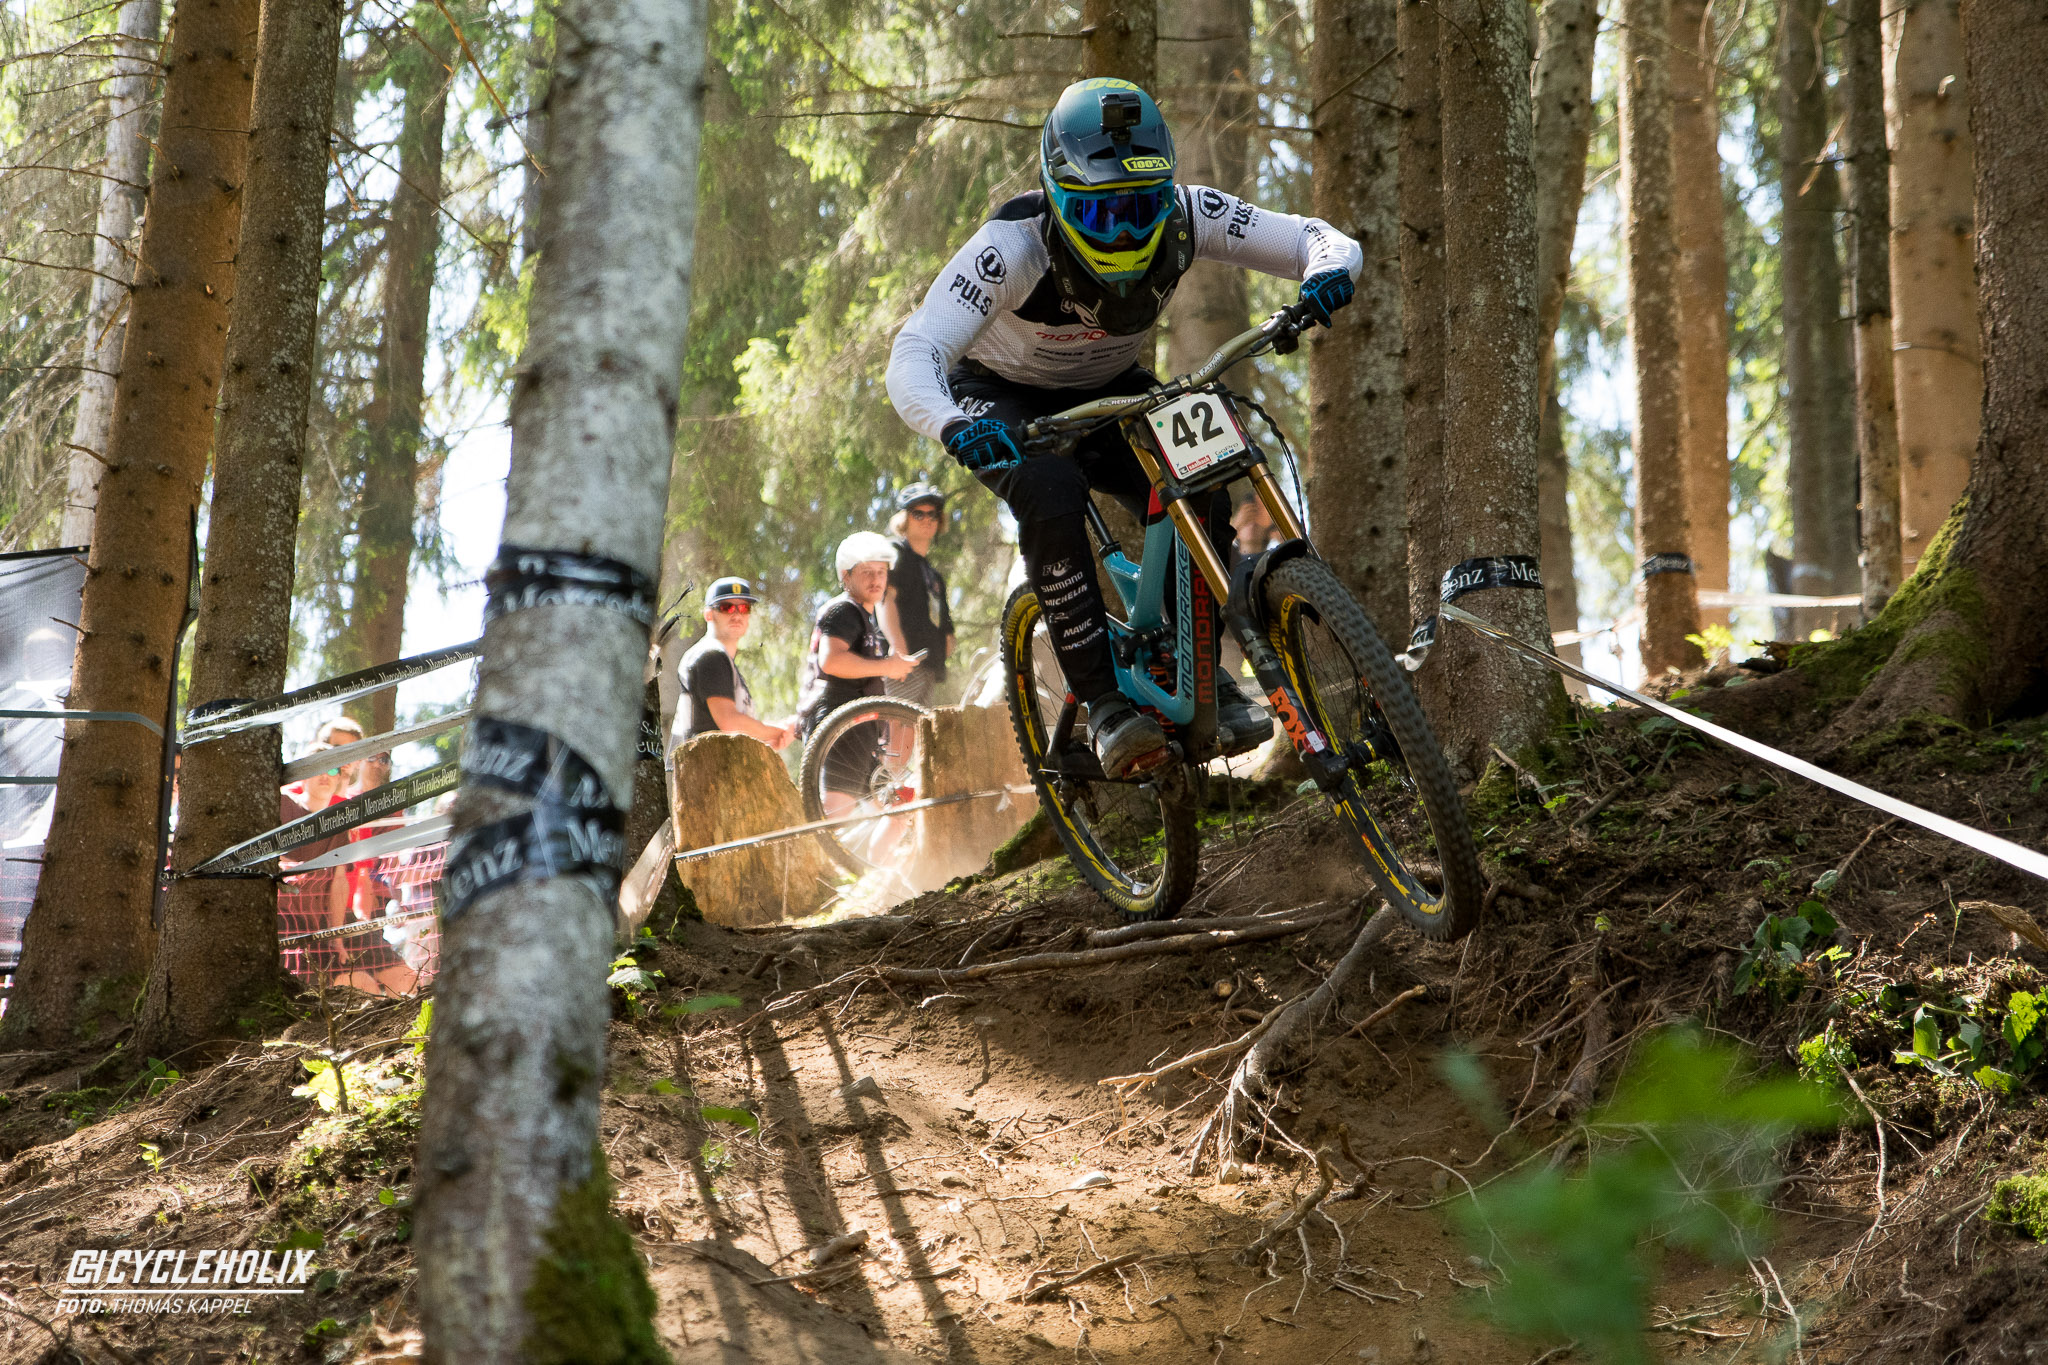 2019 Downhill Worldcup Leogang Finale Action 22